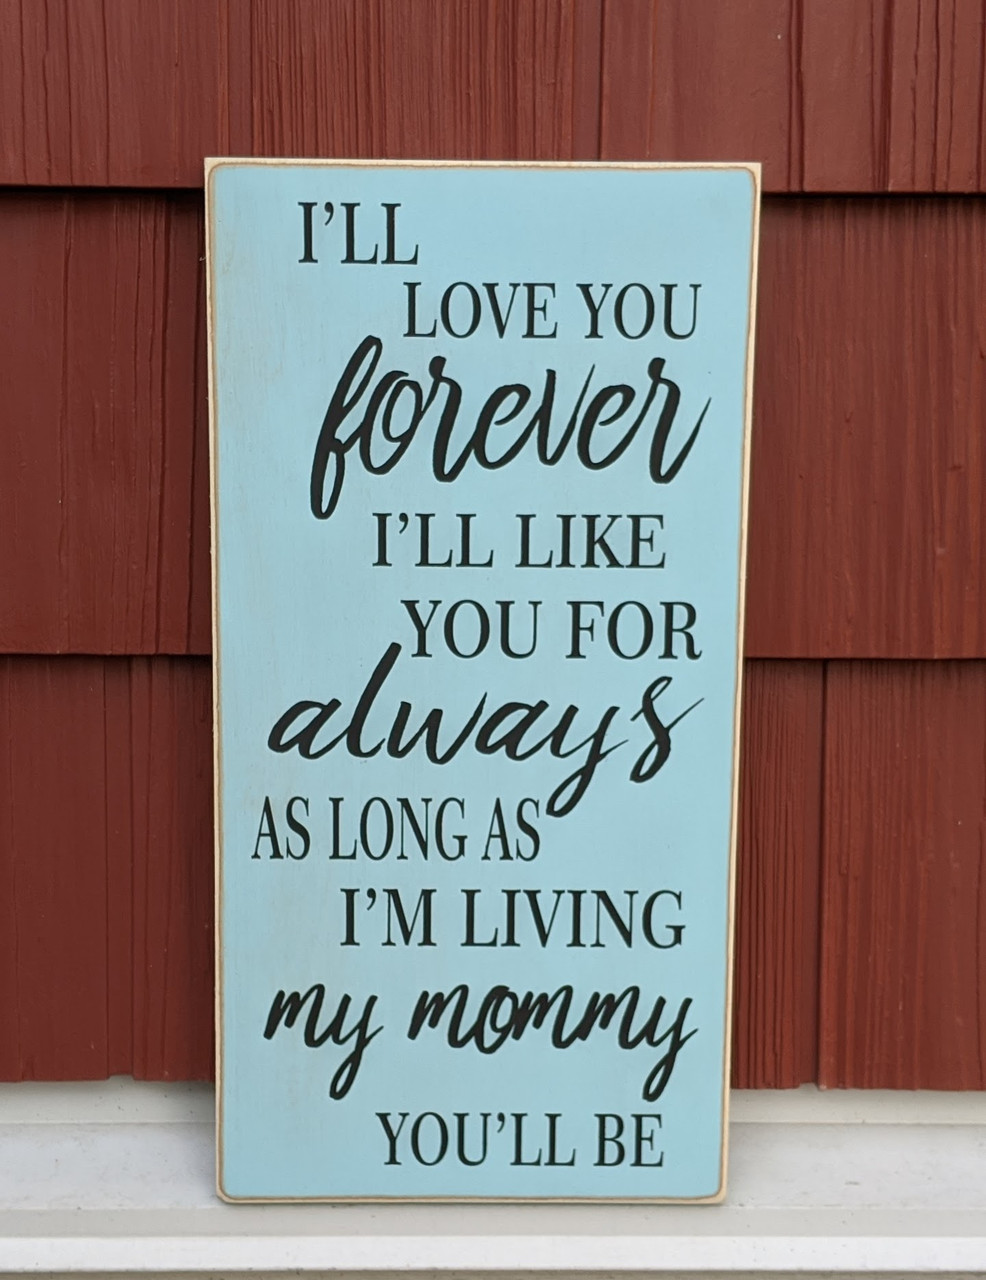 I'll love you forever - wood sign